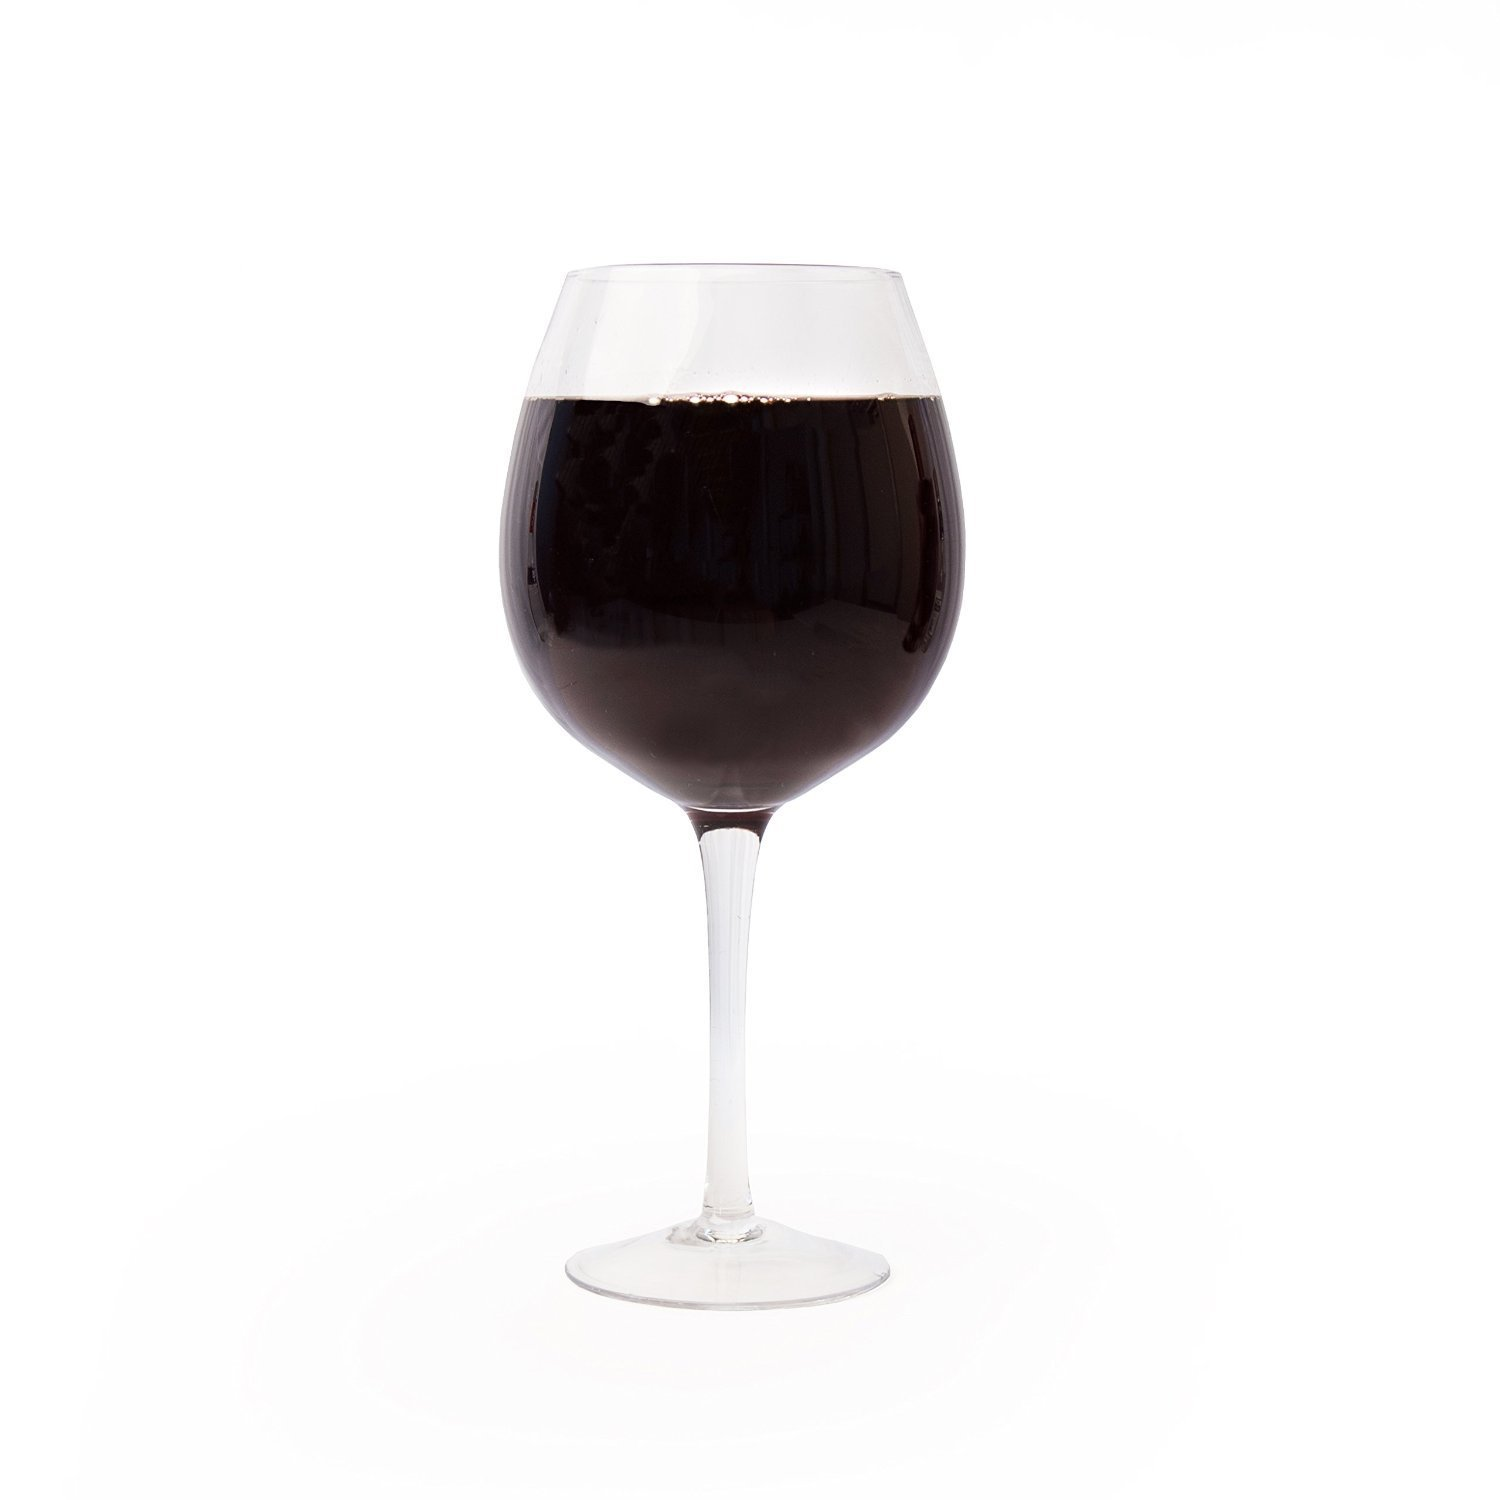 Superior Wine Glass With Wine Part - 14: Amazon.com | The Original Big Betty XL Extra Large Premium Jumbo Wine Glass  - Holds A Whole Bottle Of Wine!: Bottle Of Wine Glass: Wine Glasses